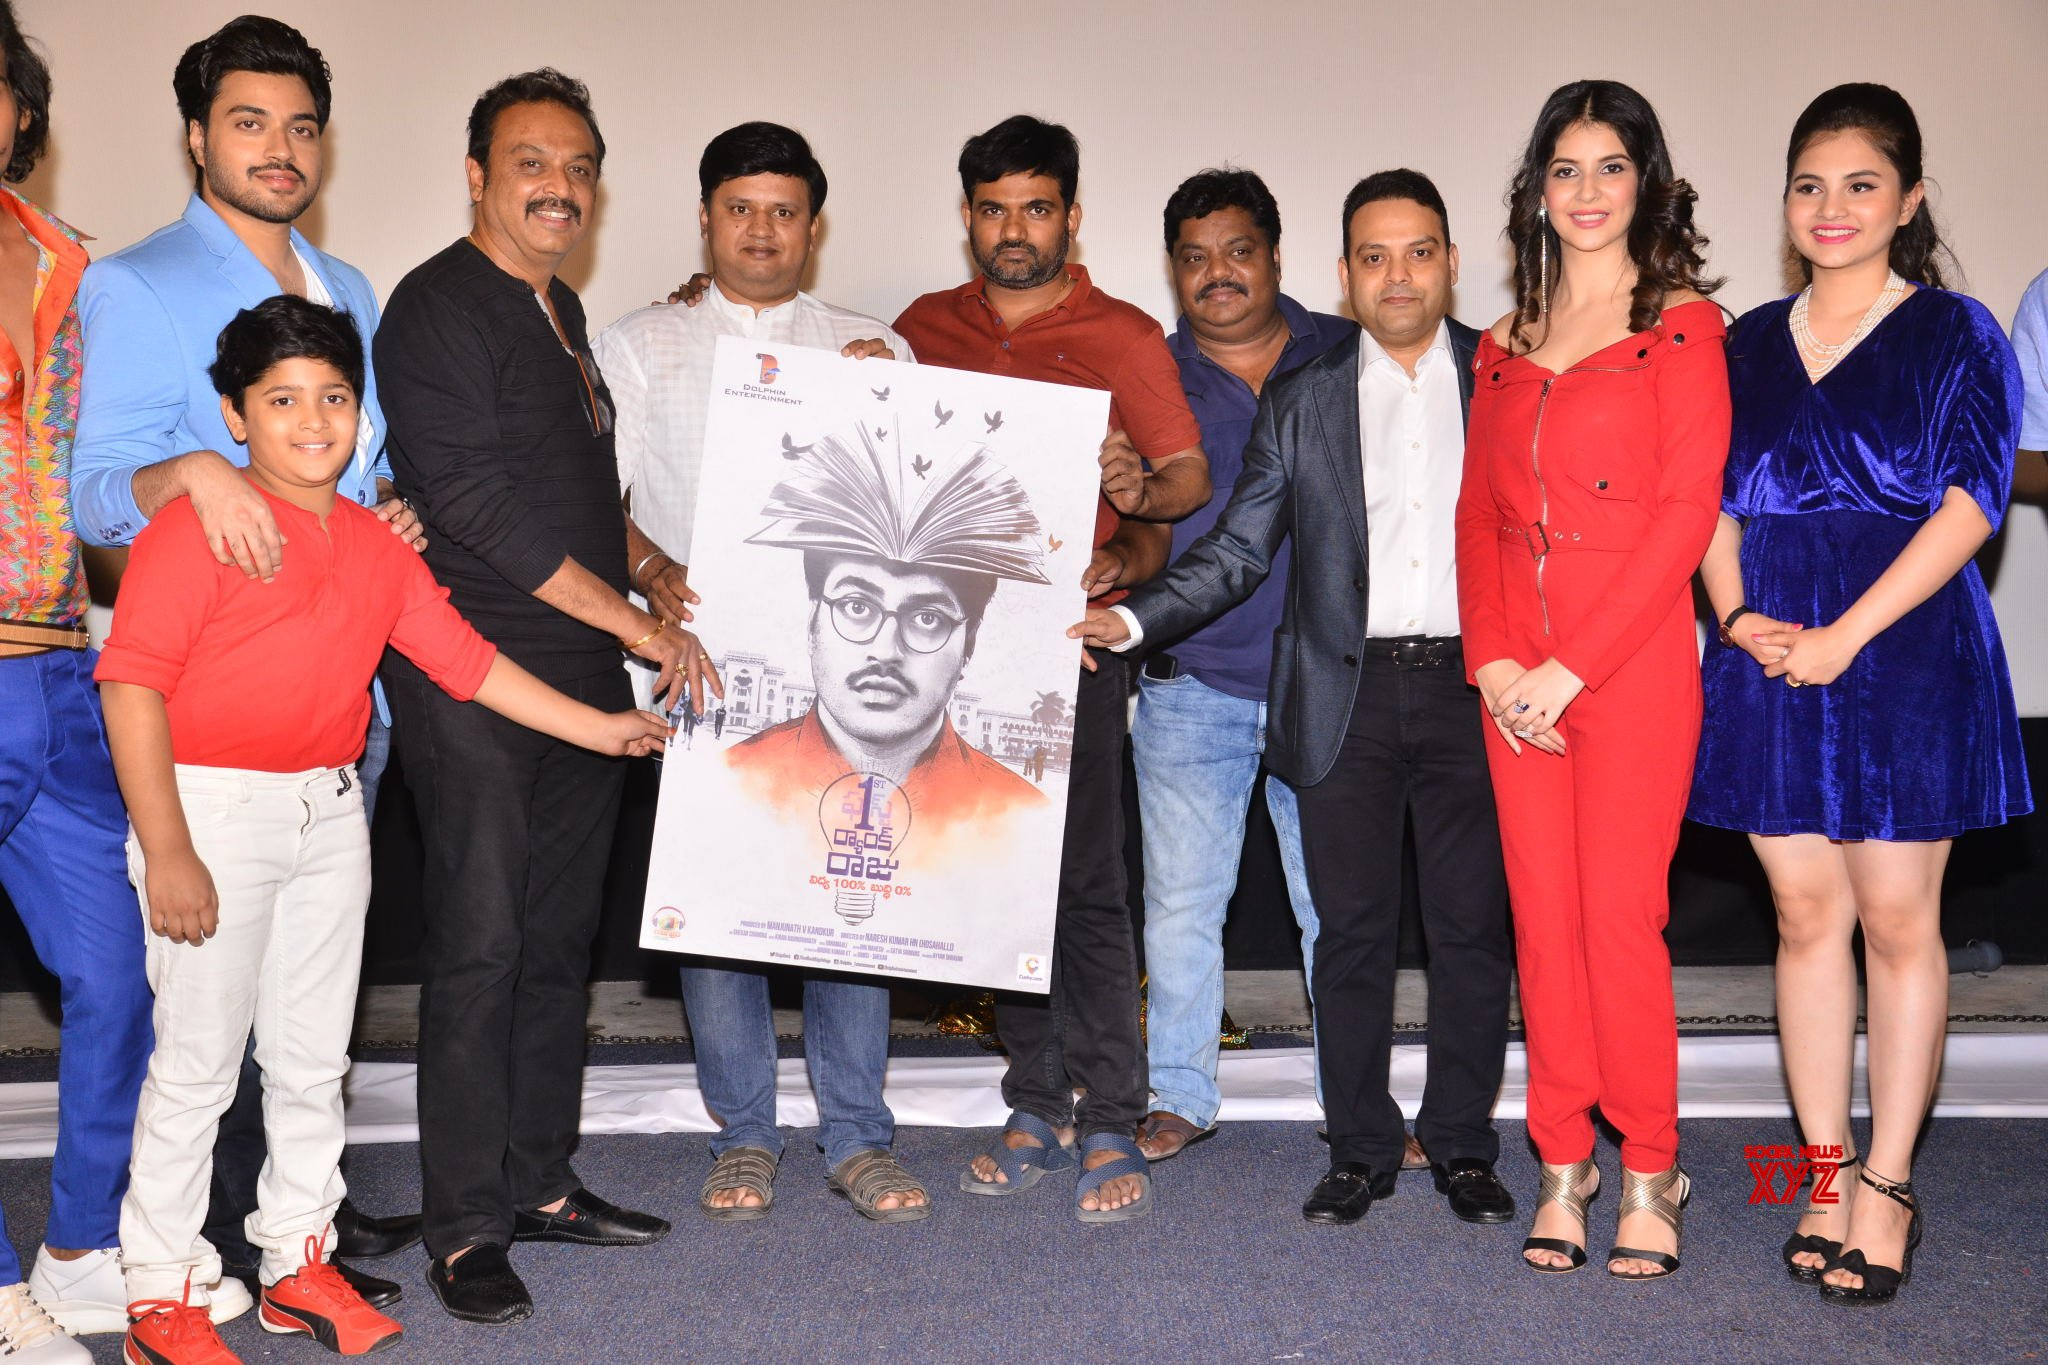 First Rank Raju movie must be watched by every parent: Producer Manjunath